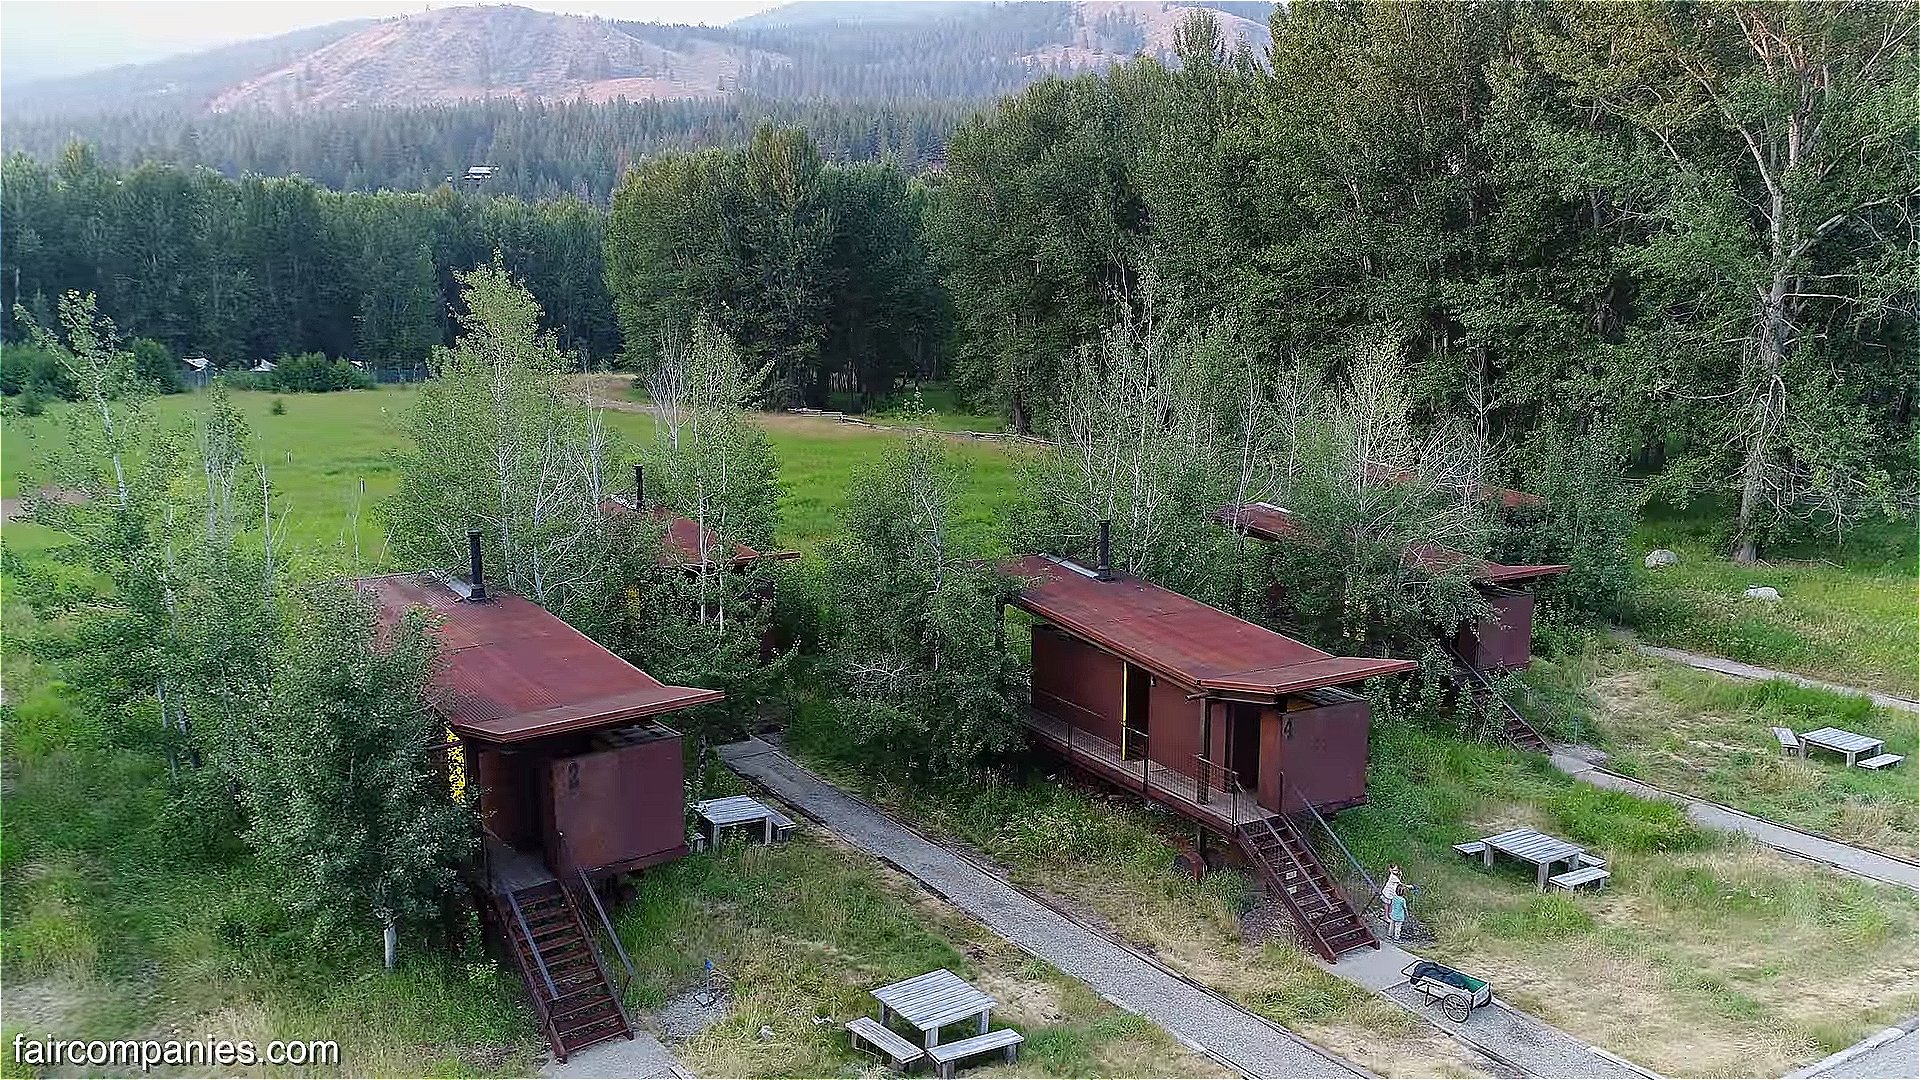 190 Sq Ft Tiny Rolling Hut Cabins In Methow Valley